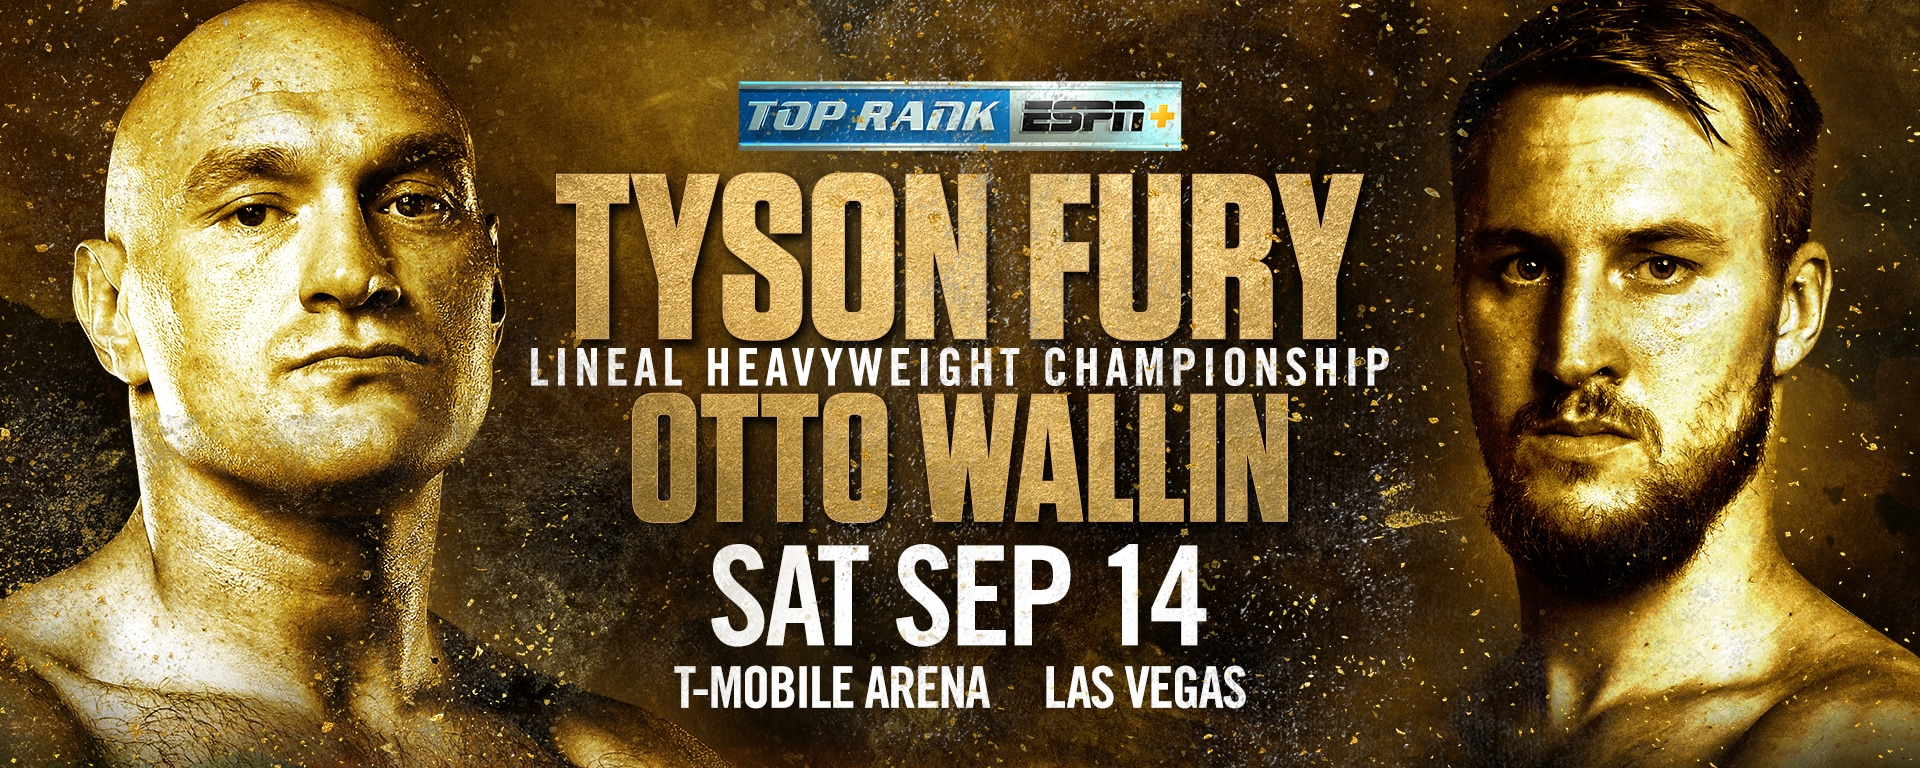 Image of Tyson Fury and Otto Wallin over Las Vegas Skyline